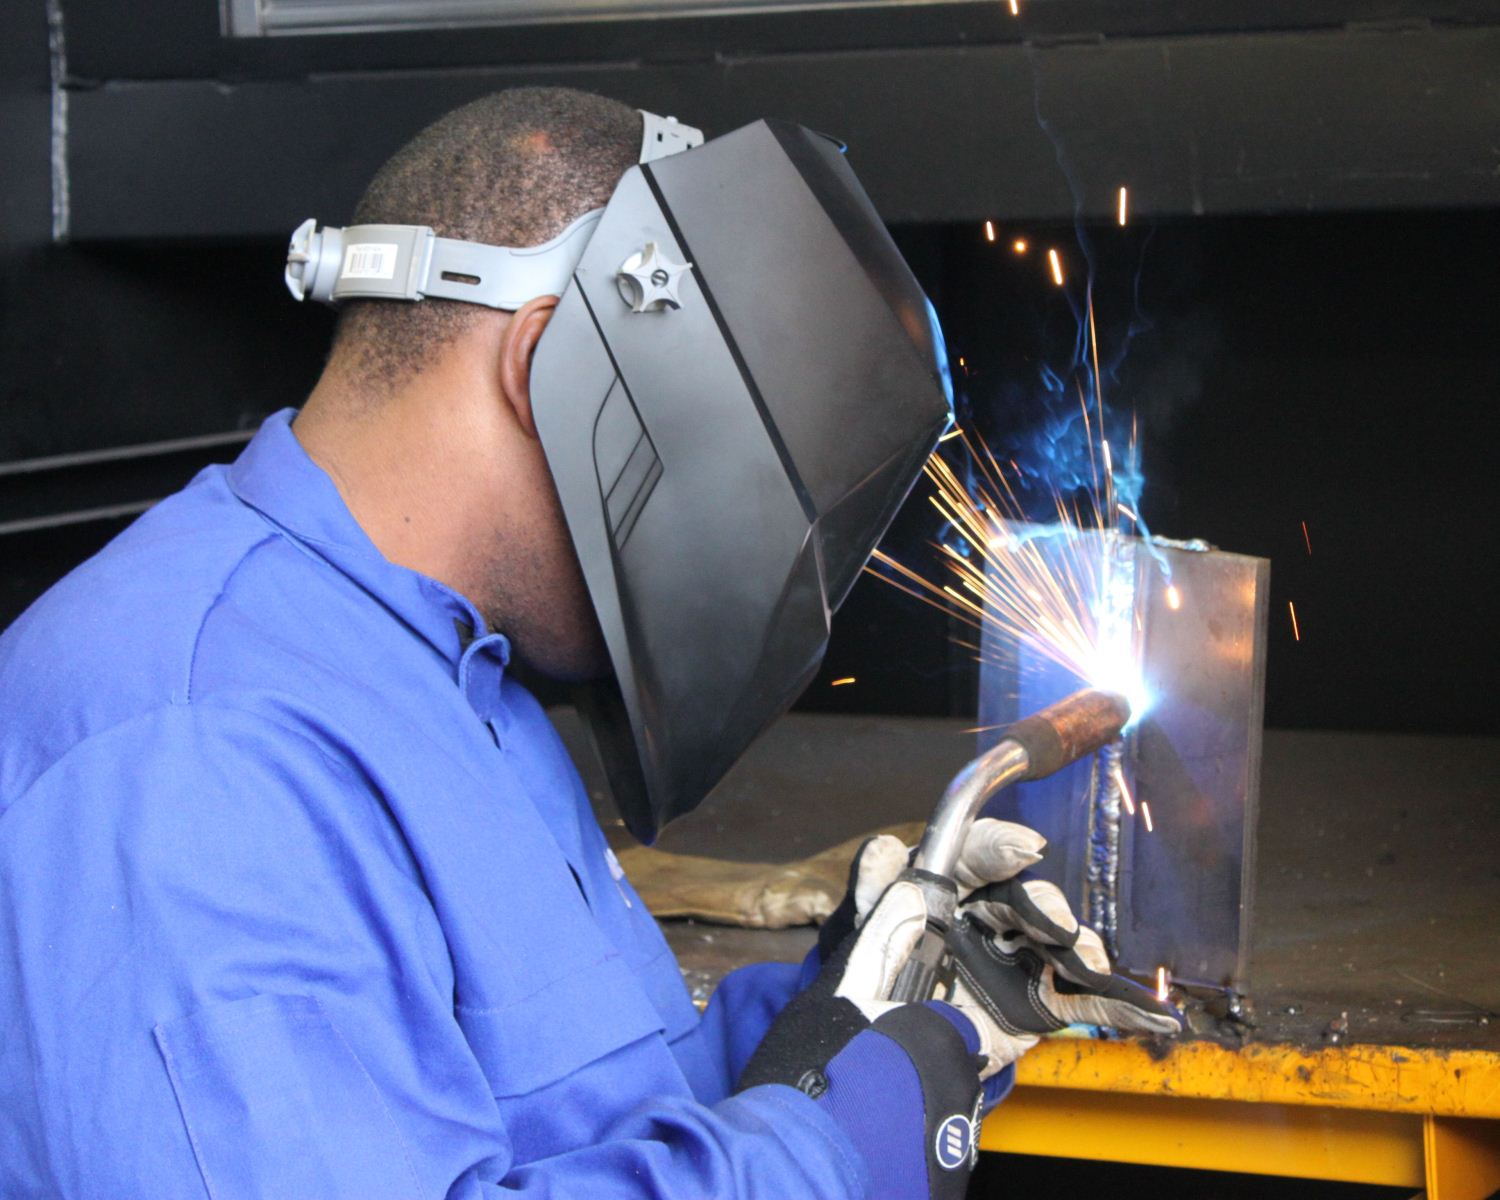 Transnet wants unemployed youth with Grade 12/N2/N3 for Welder job-training or apprenticeship in North West for 2018